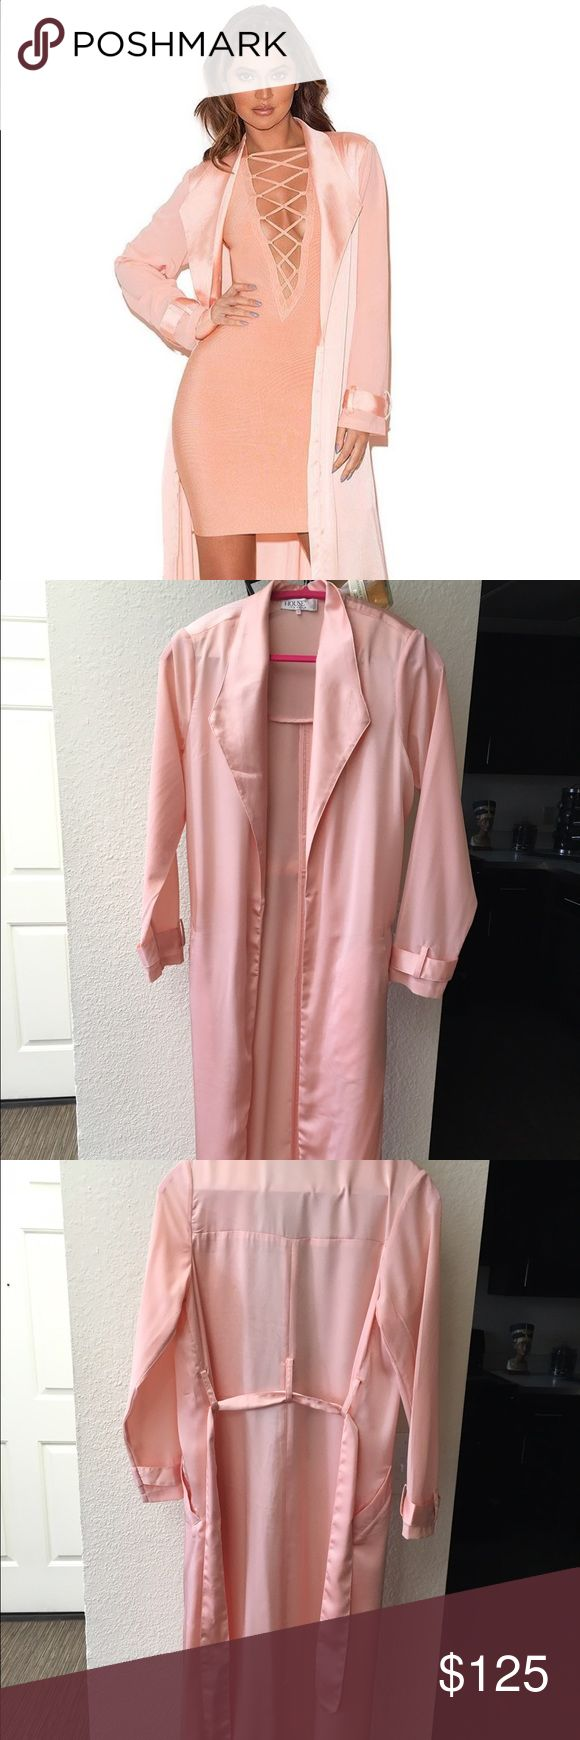 House Of CB Coryn Rose Gold Silky Duster Coat House Of Celebrity Boutique *authentic* Coryn Rose Gold Silky Duster Coat - size medium / never worn / brand new House of CB Jackets & Coats Trench Coats